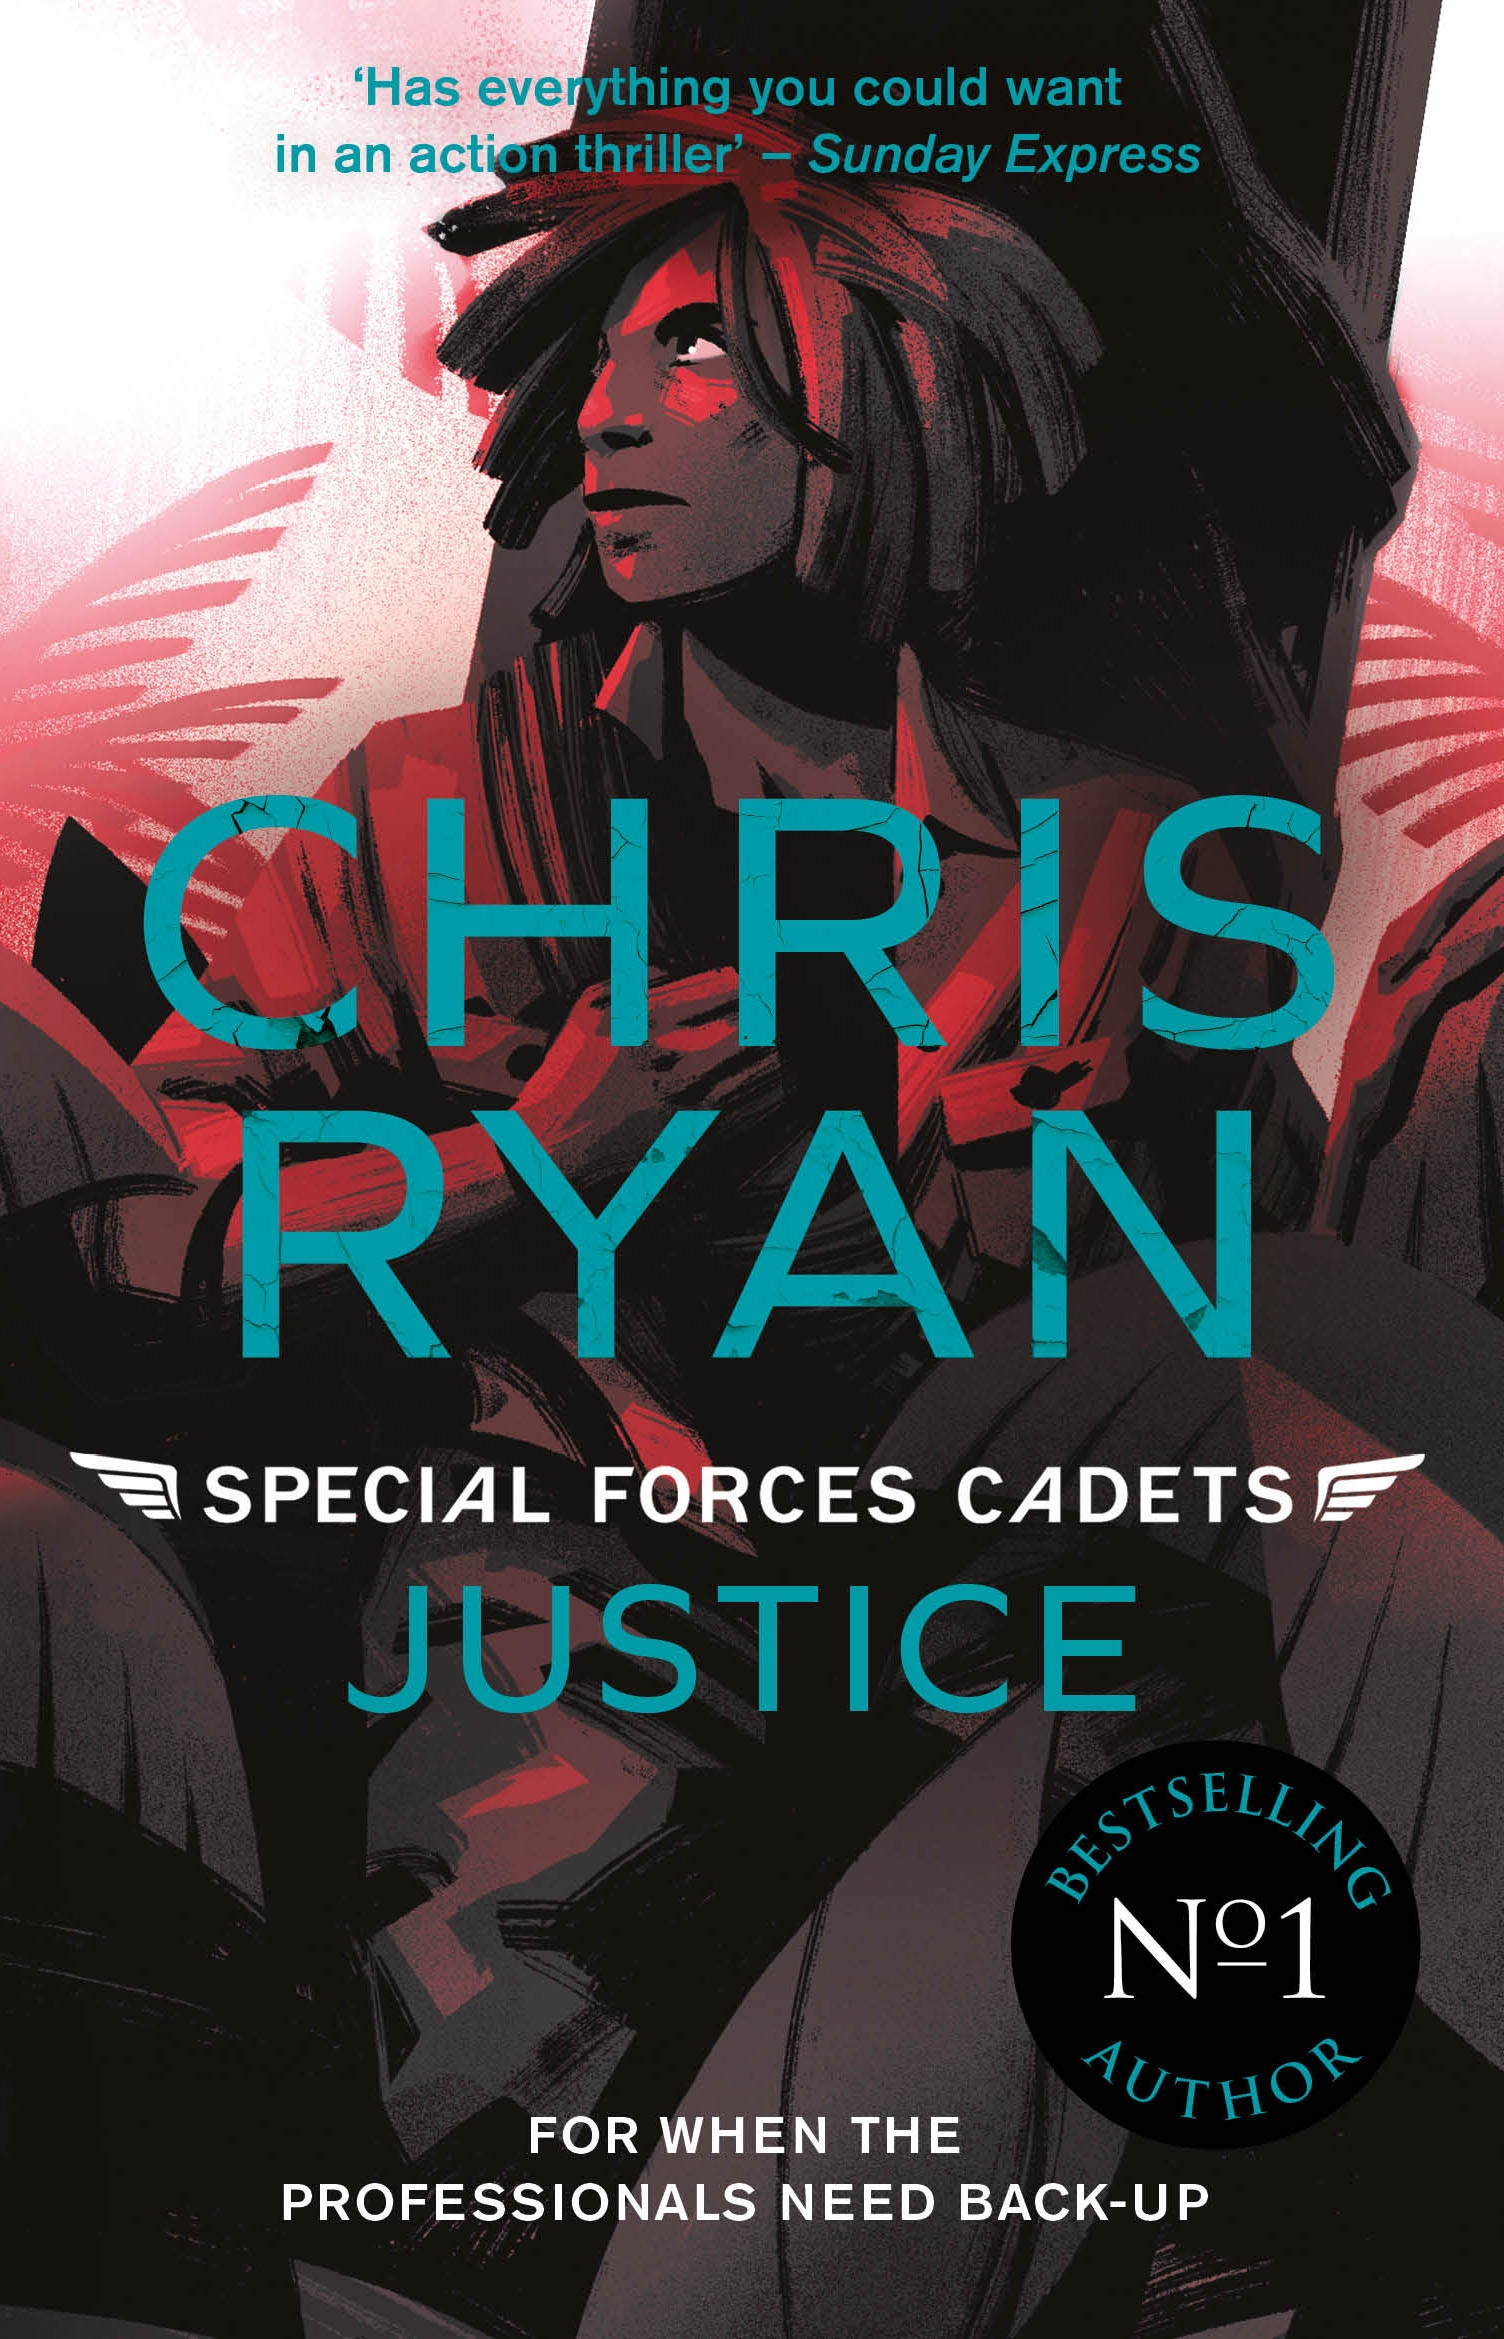 Special Forces Cadets 3: Justice by Chris Ryan